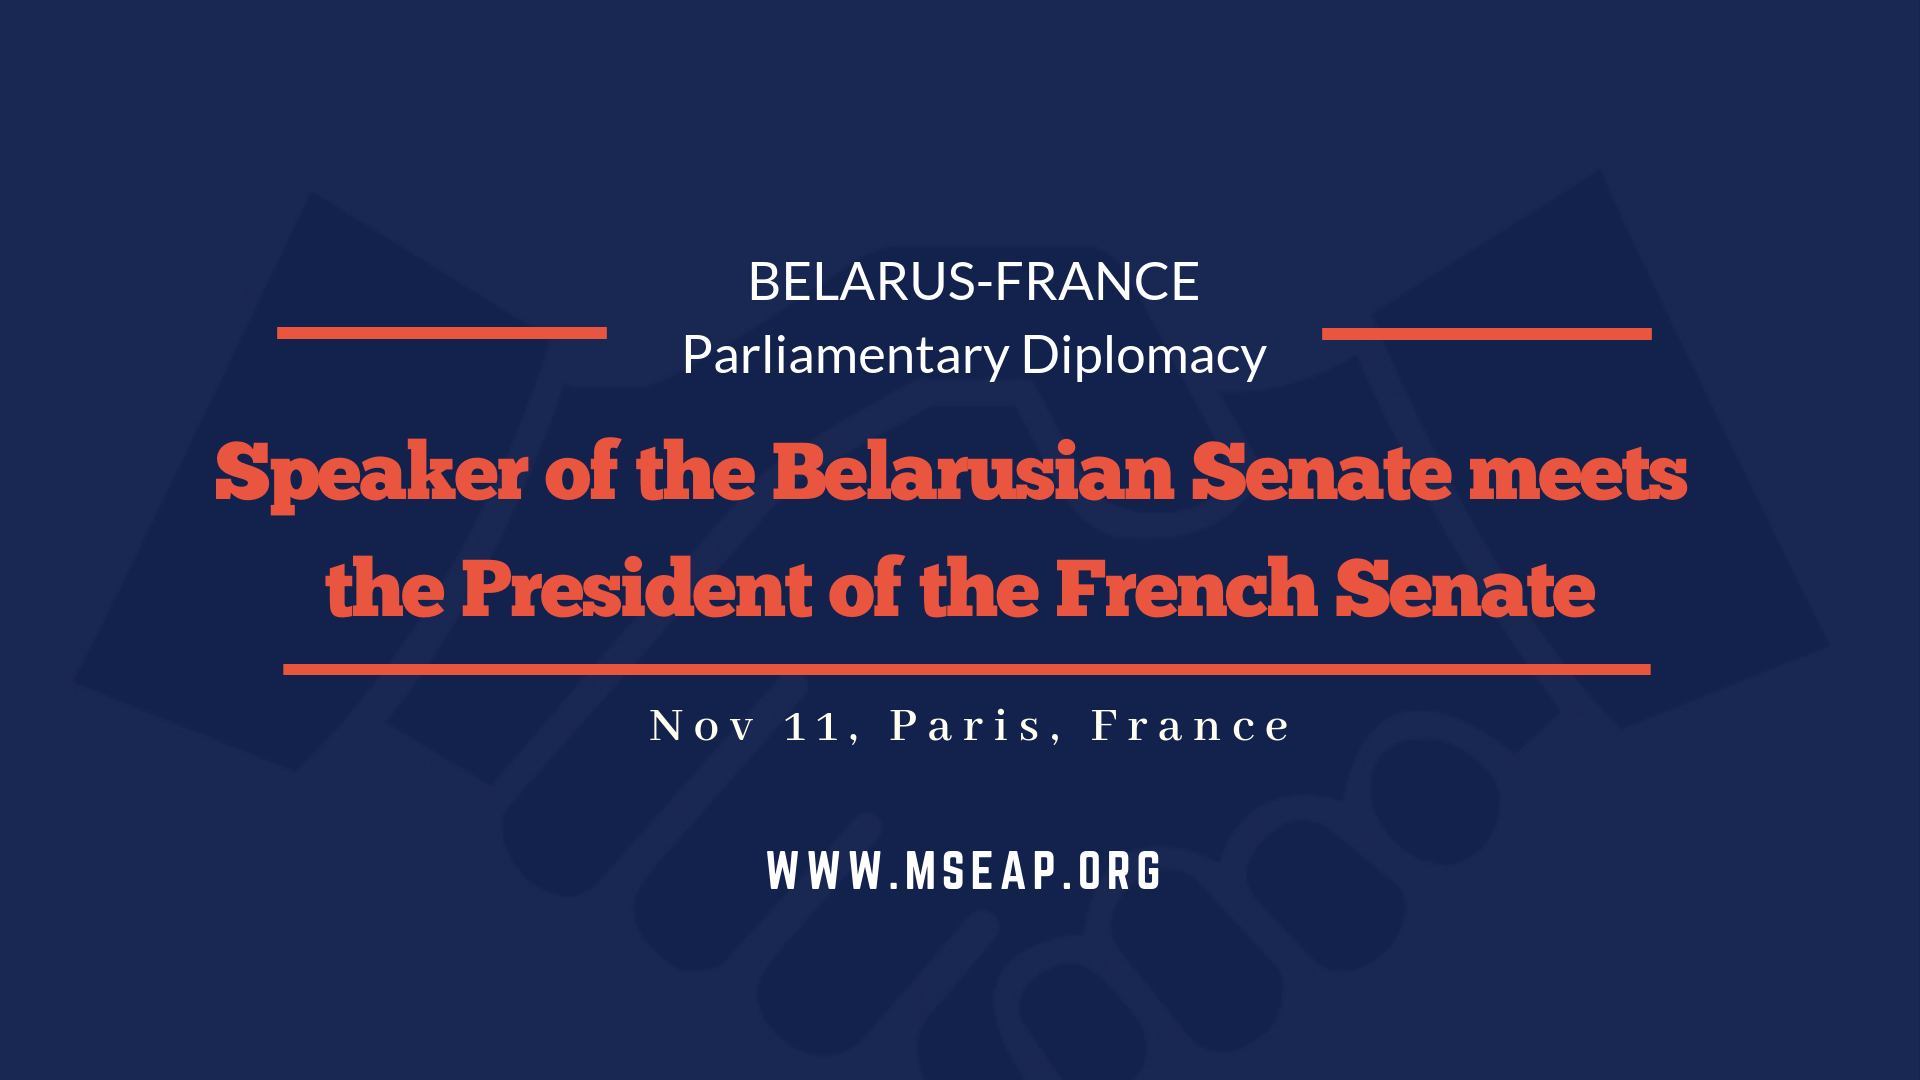 Speaker of the upper house of Berlarusian parliament meets the President of the French Senate in Paris